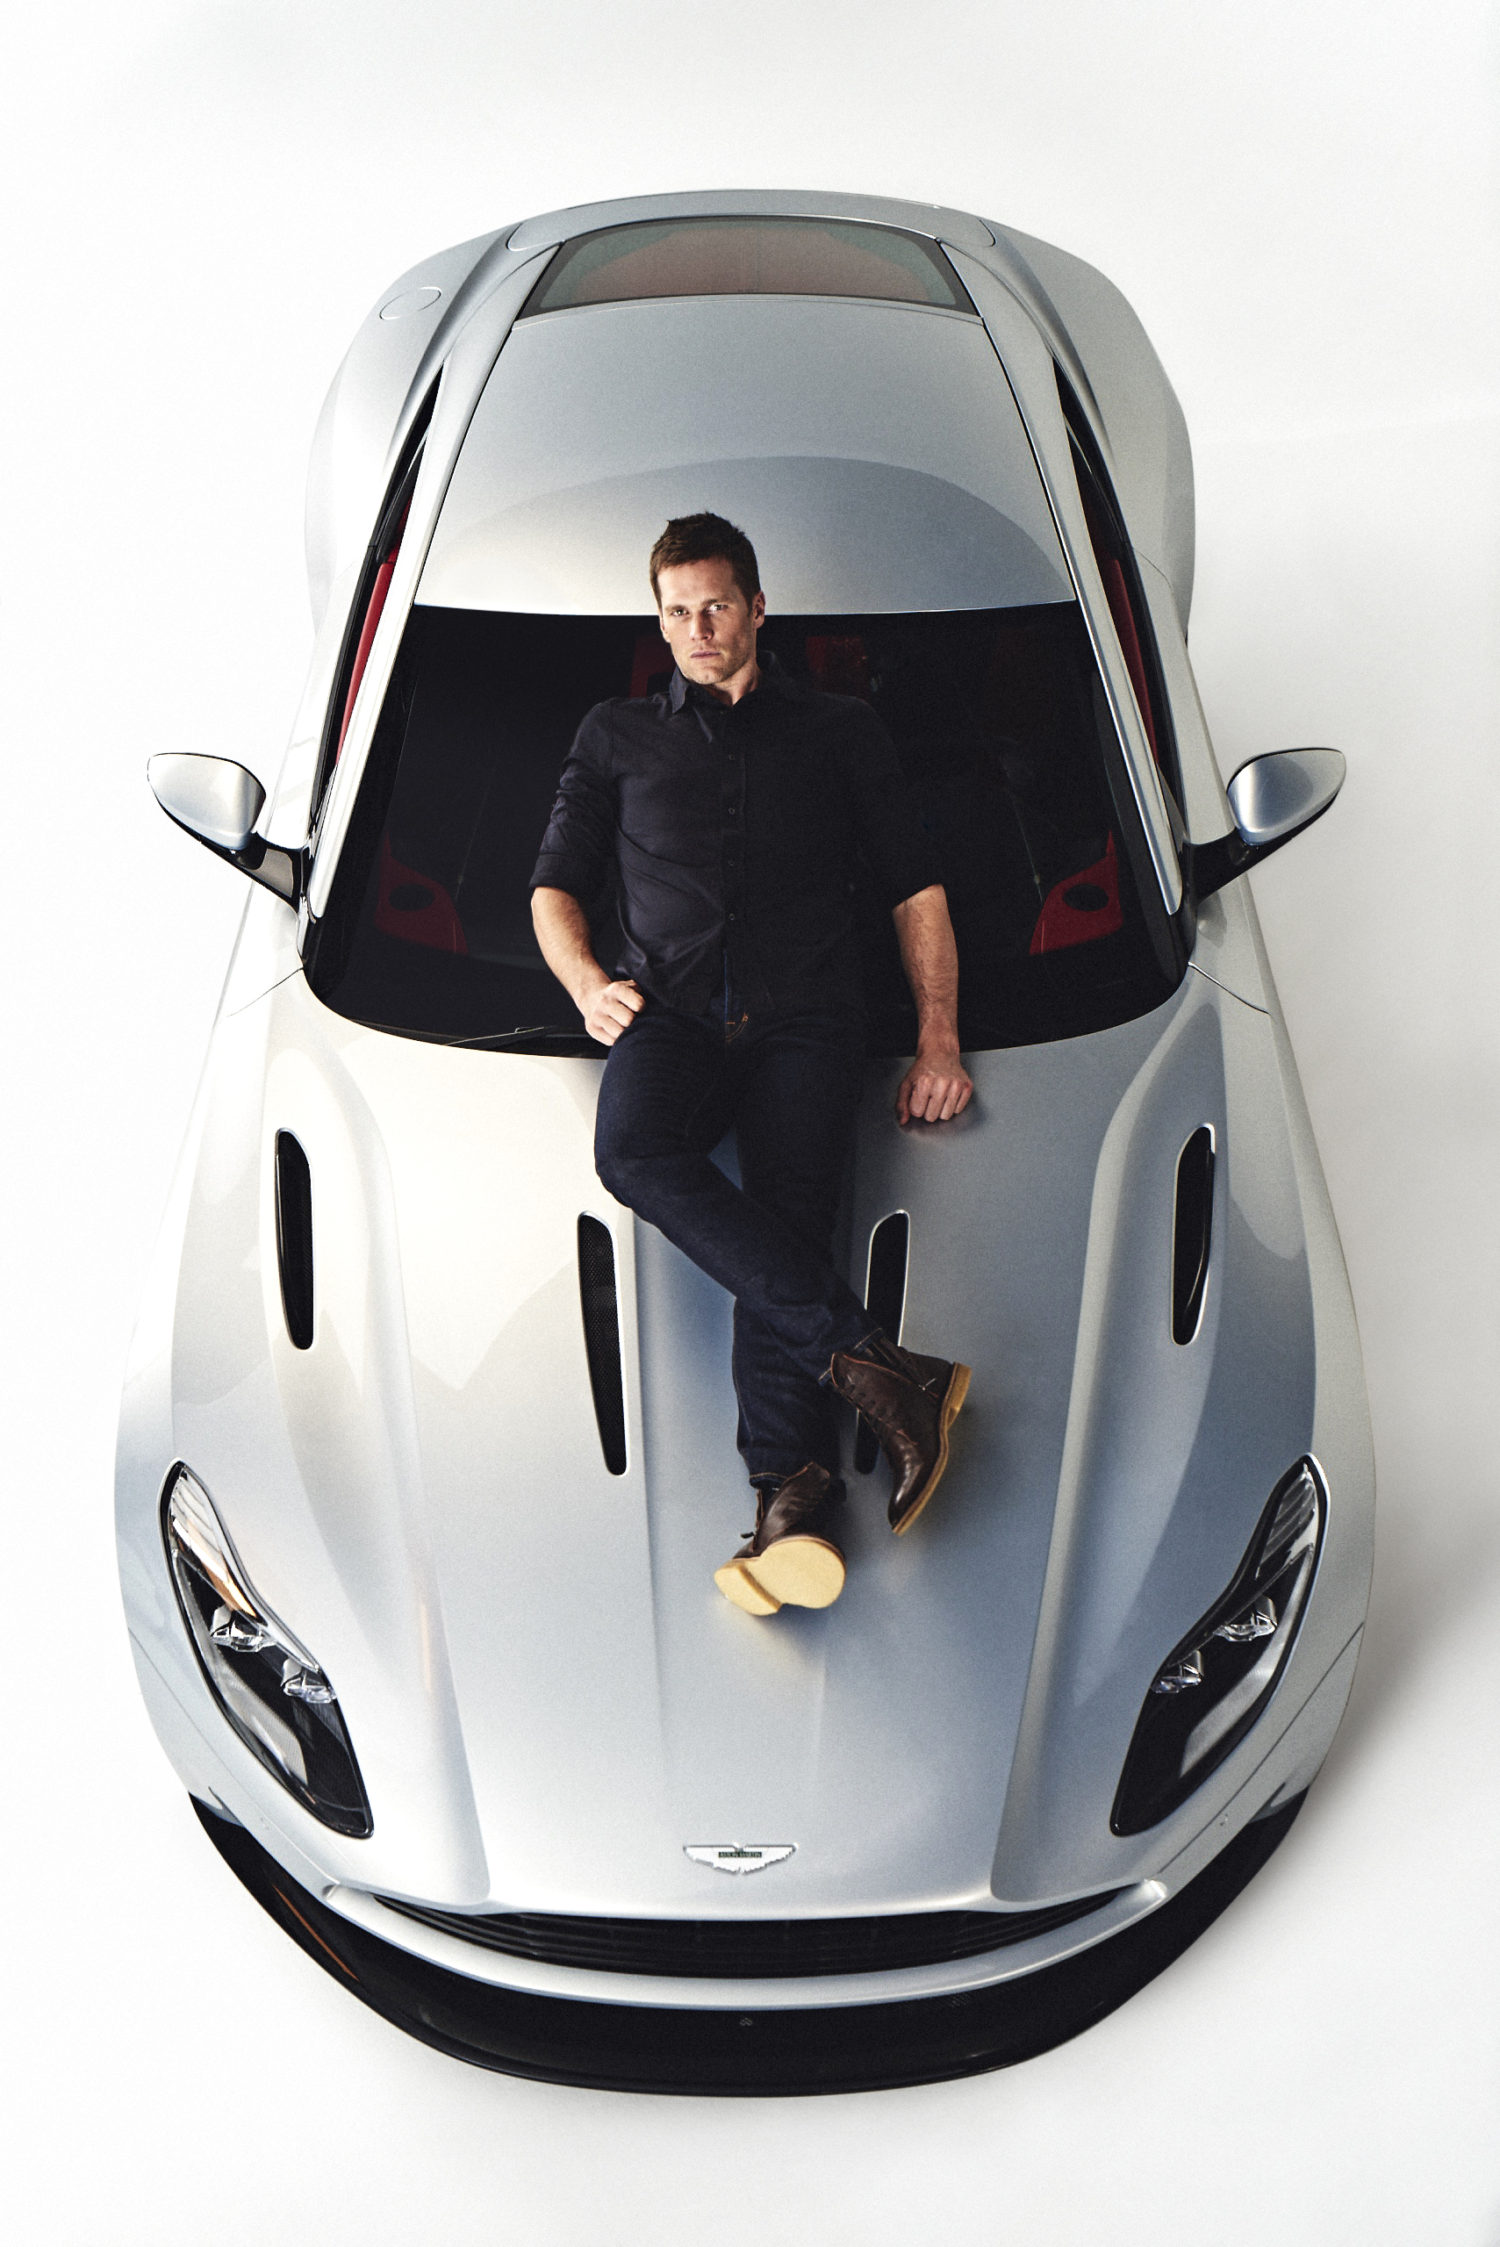 TrackWorthy -Aston Martin and Tom Brady Unite Introducing Category of One Why Beautiful Matters (1)